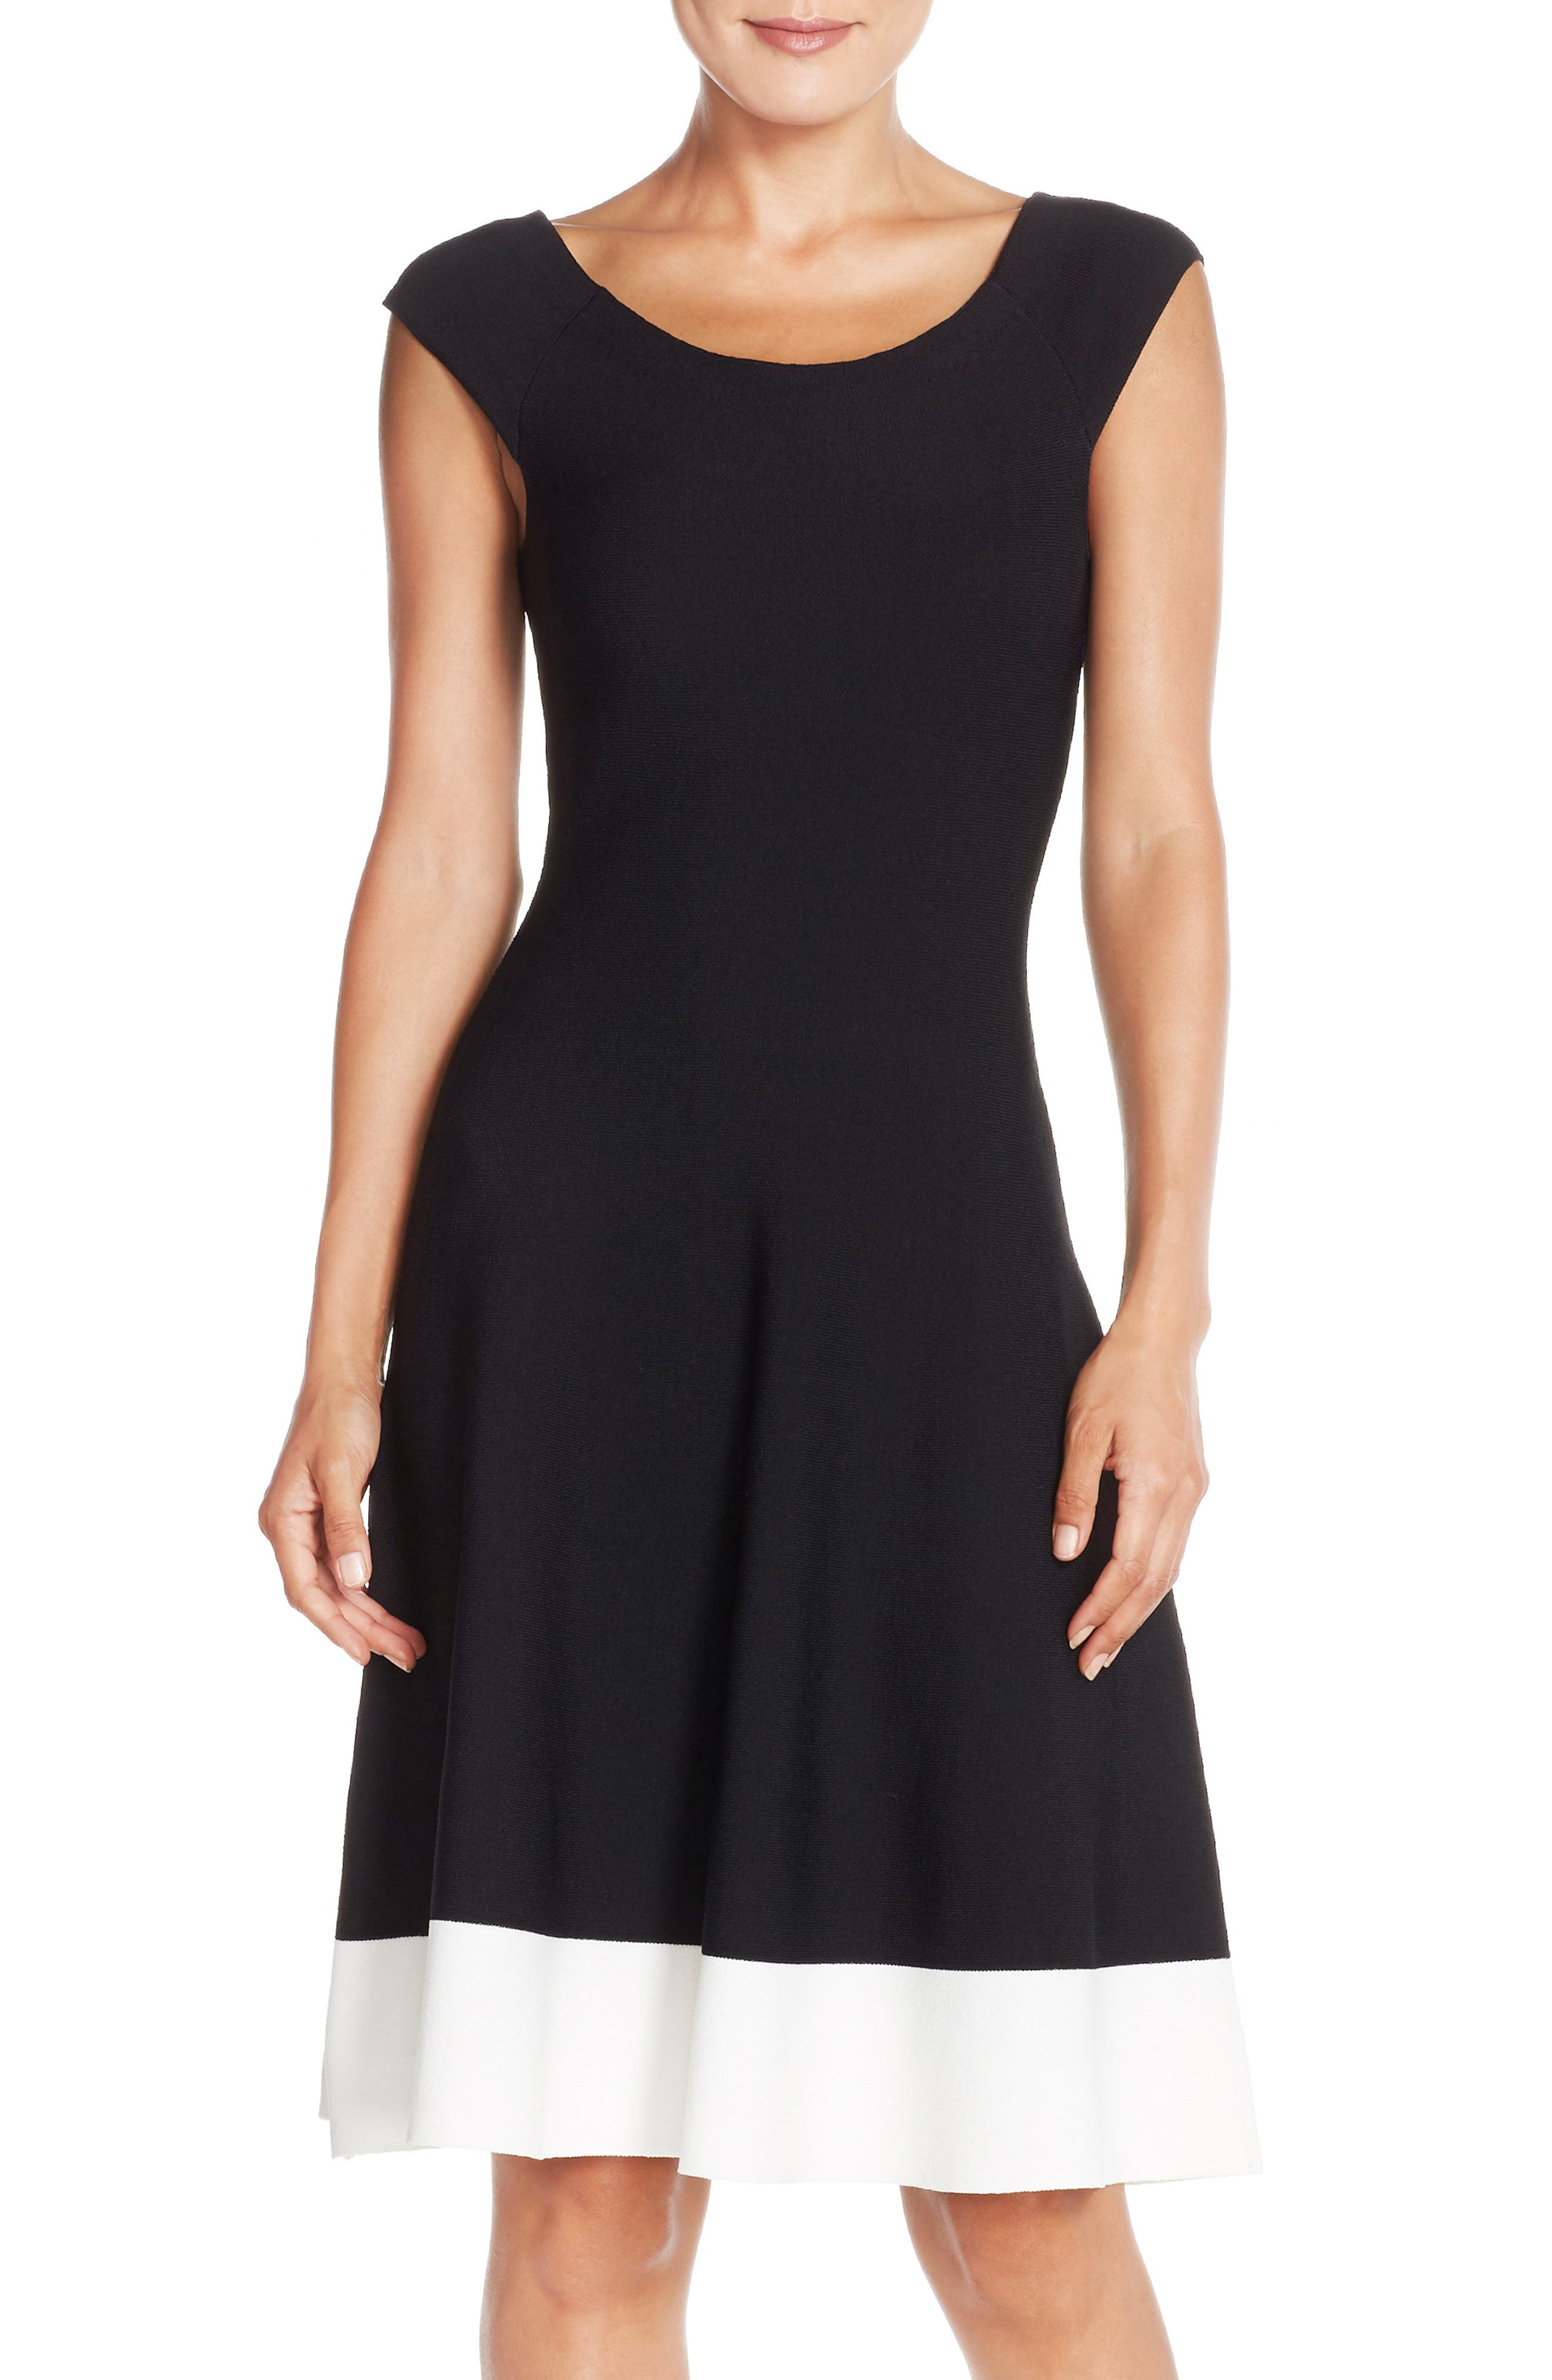 Colorblock Fit & Flare Sweater Dress,                             Main thumbnail 1, color,                             Black/ Ivory